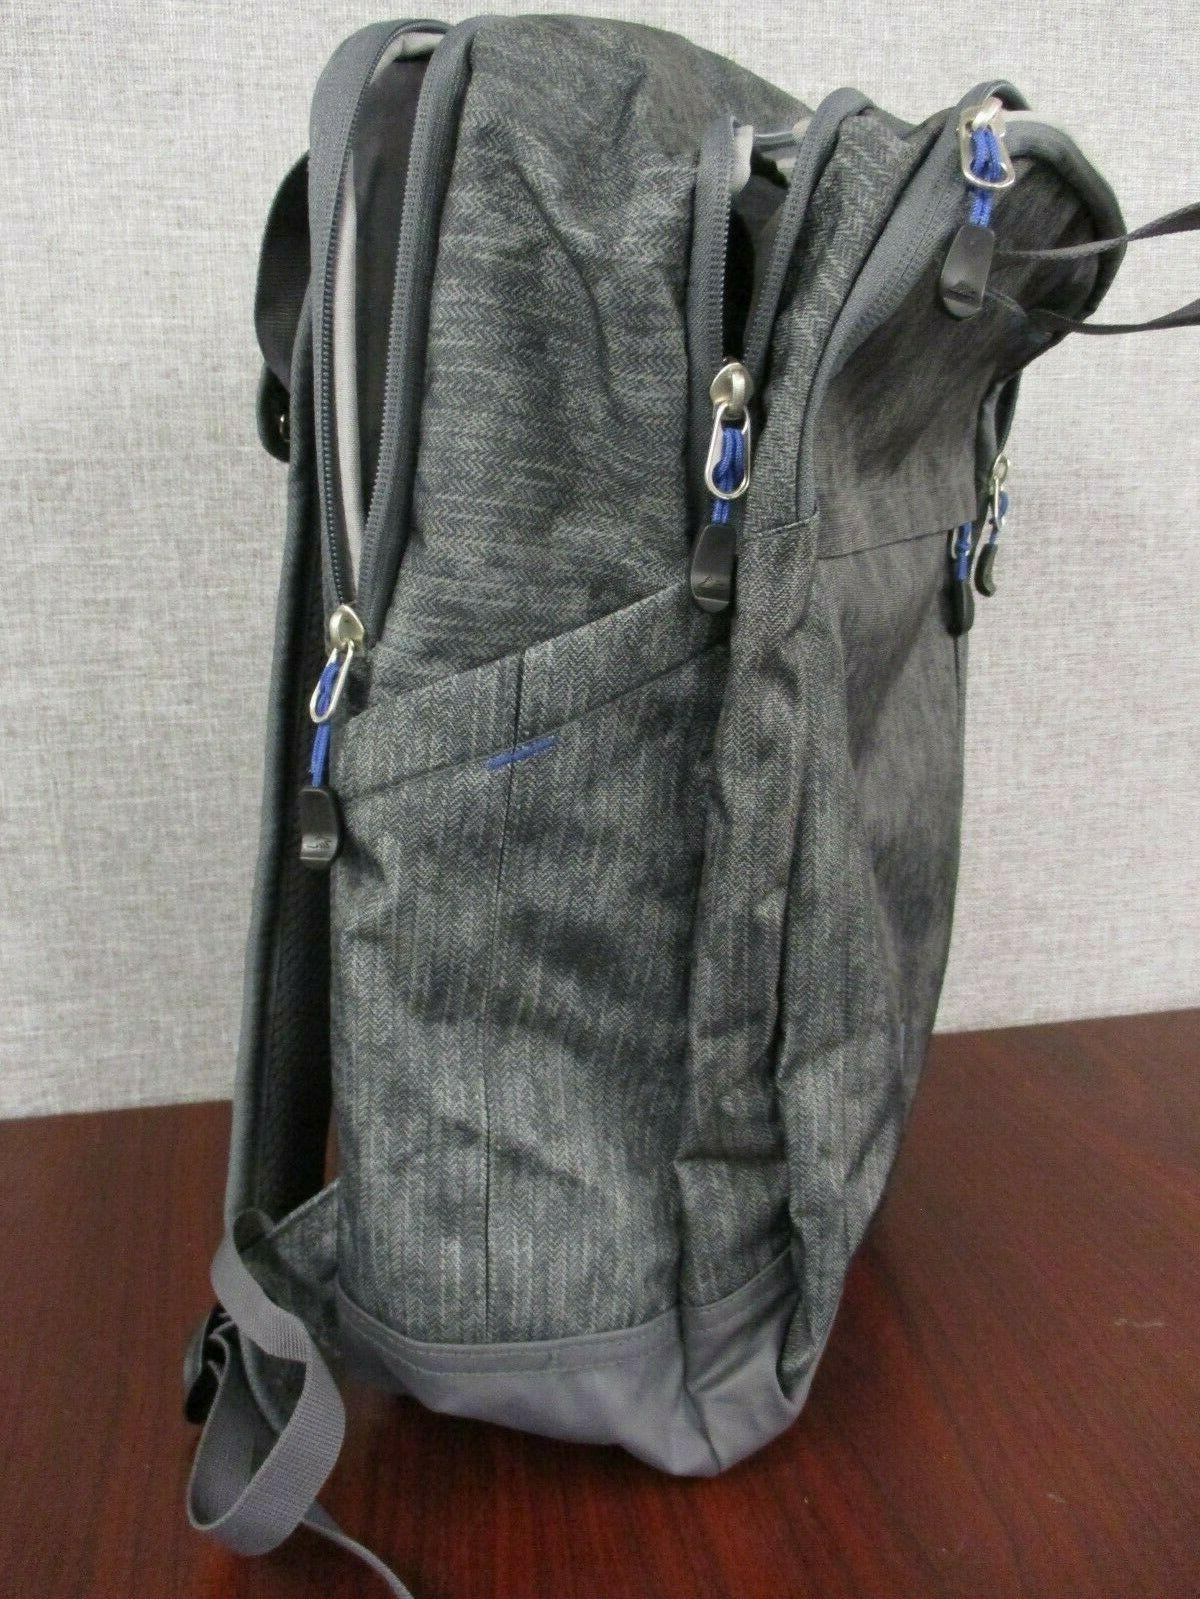 New Everyday Grab Handle BackPack Book Bag Laptop - Gray